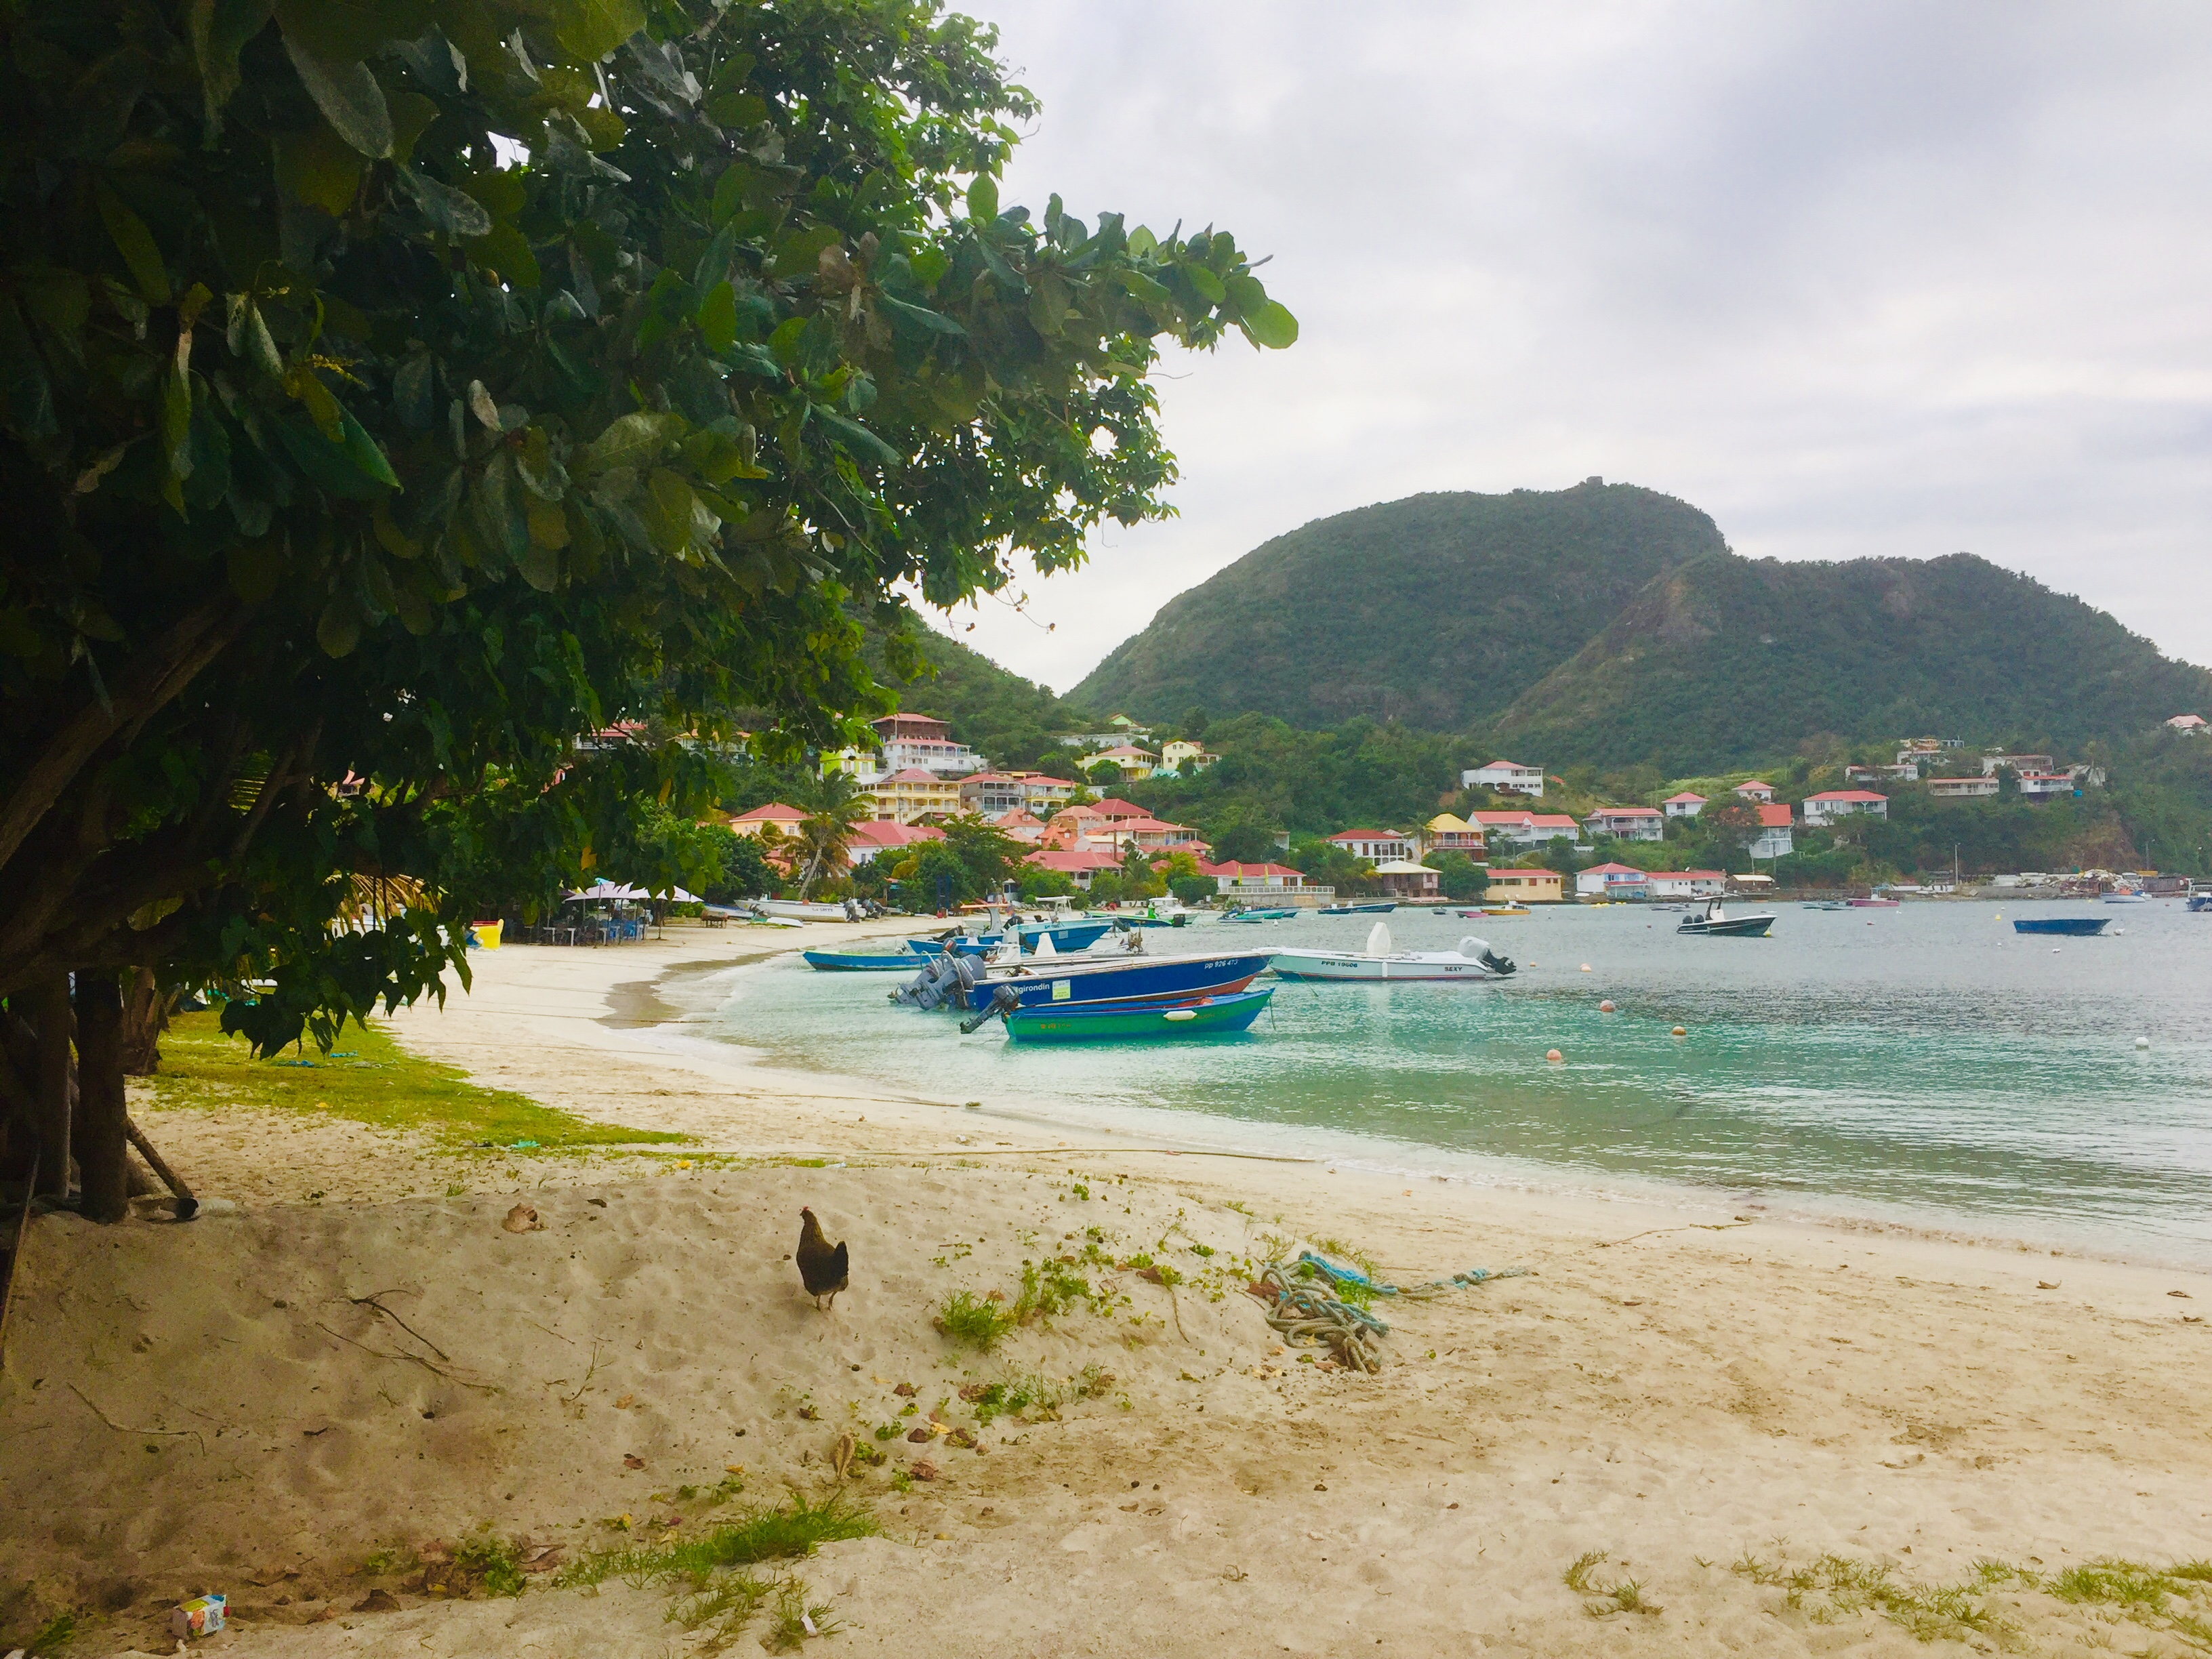 The Baie Bourg de Saintes